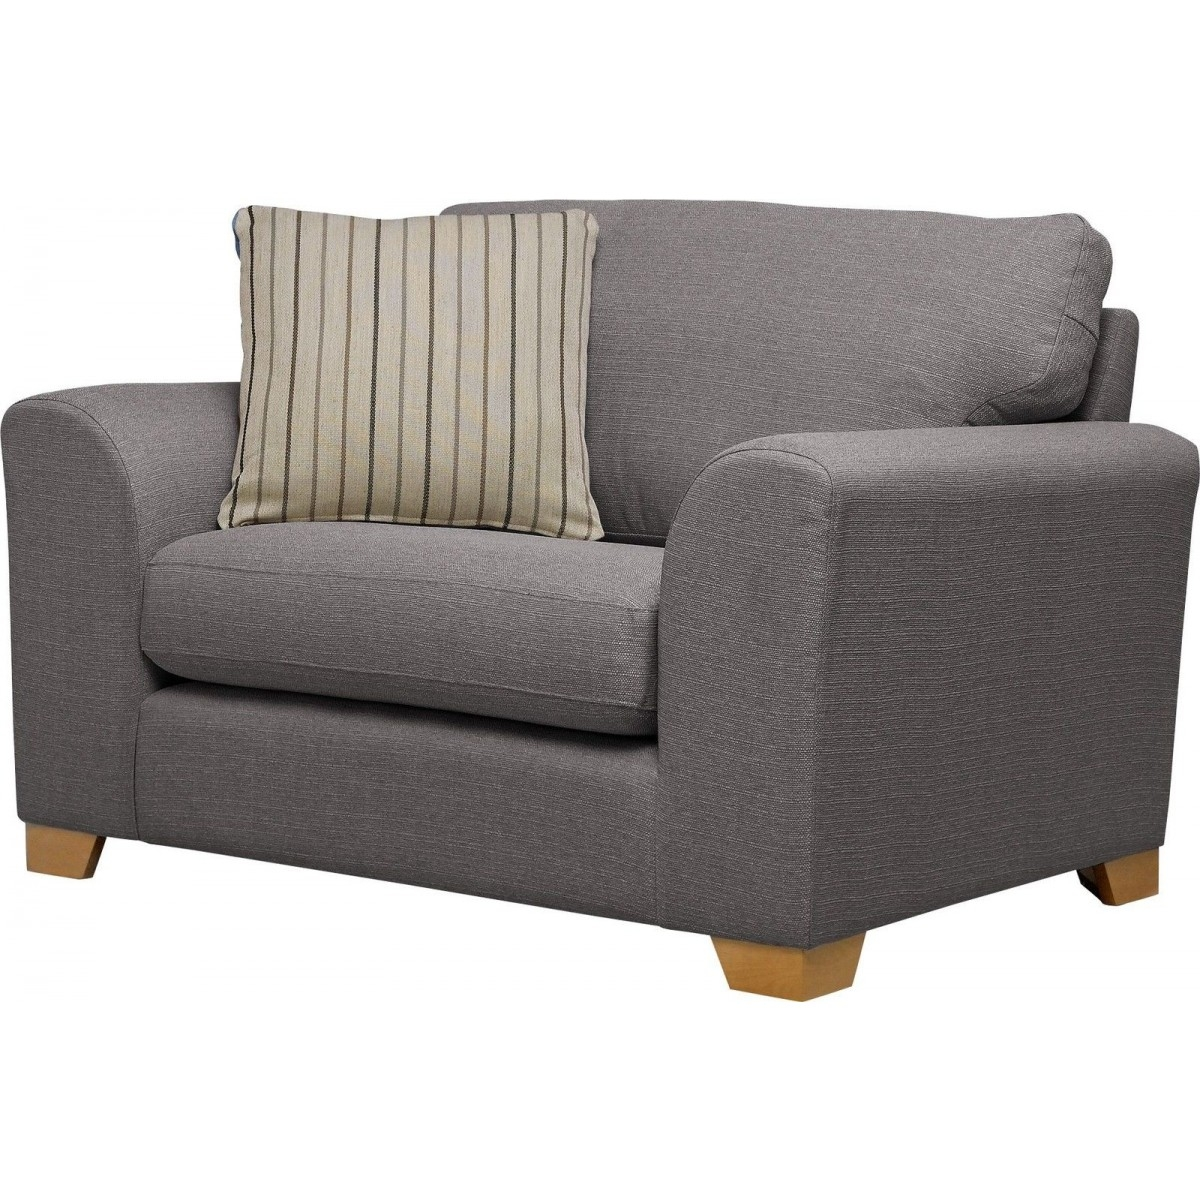 Ashdown Fabric Cuddle Chair Grey Furnico Village For Snuggle Sofas (Image 2 of 15)